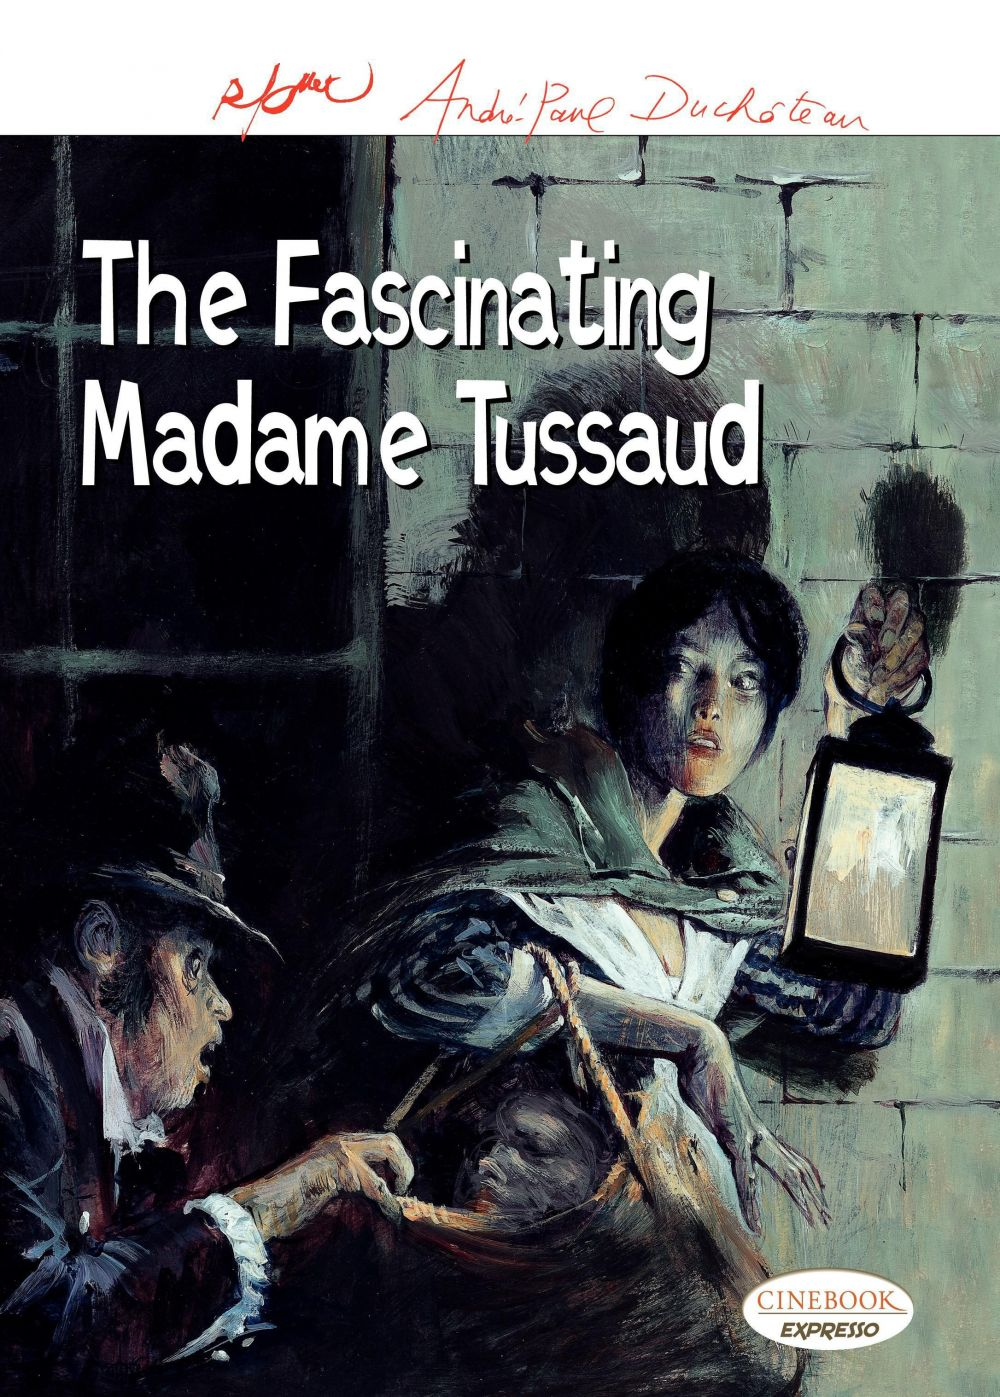 The Fascinating Madame Tussaud